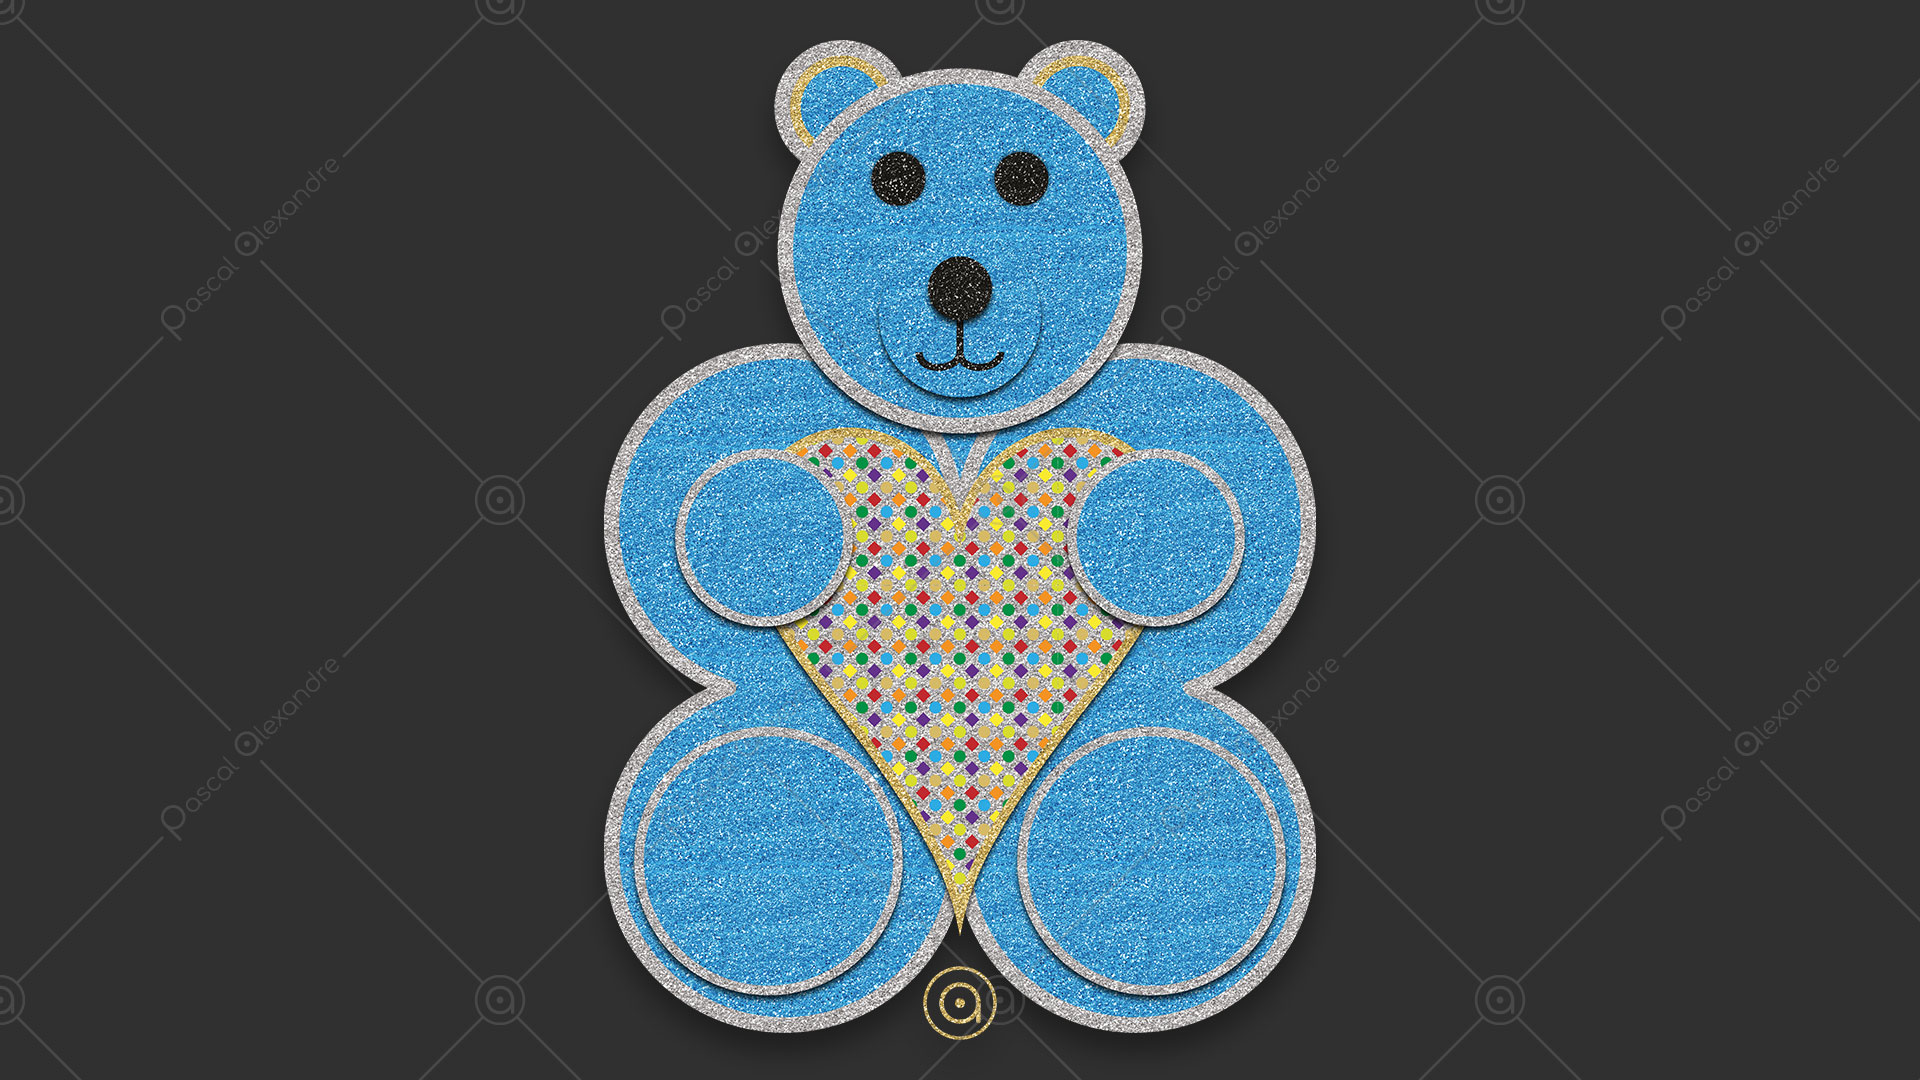 Teddy Bear Love Rainbow 1553784574